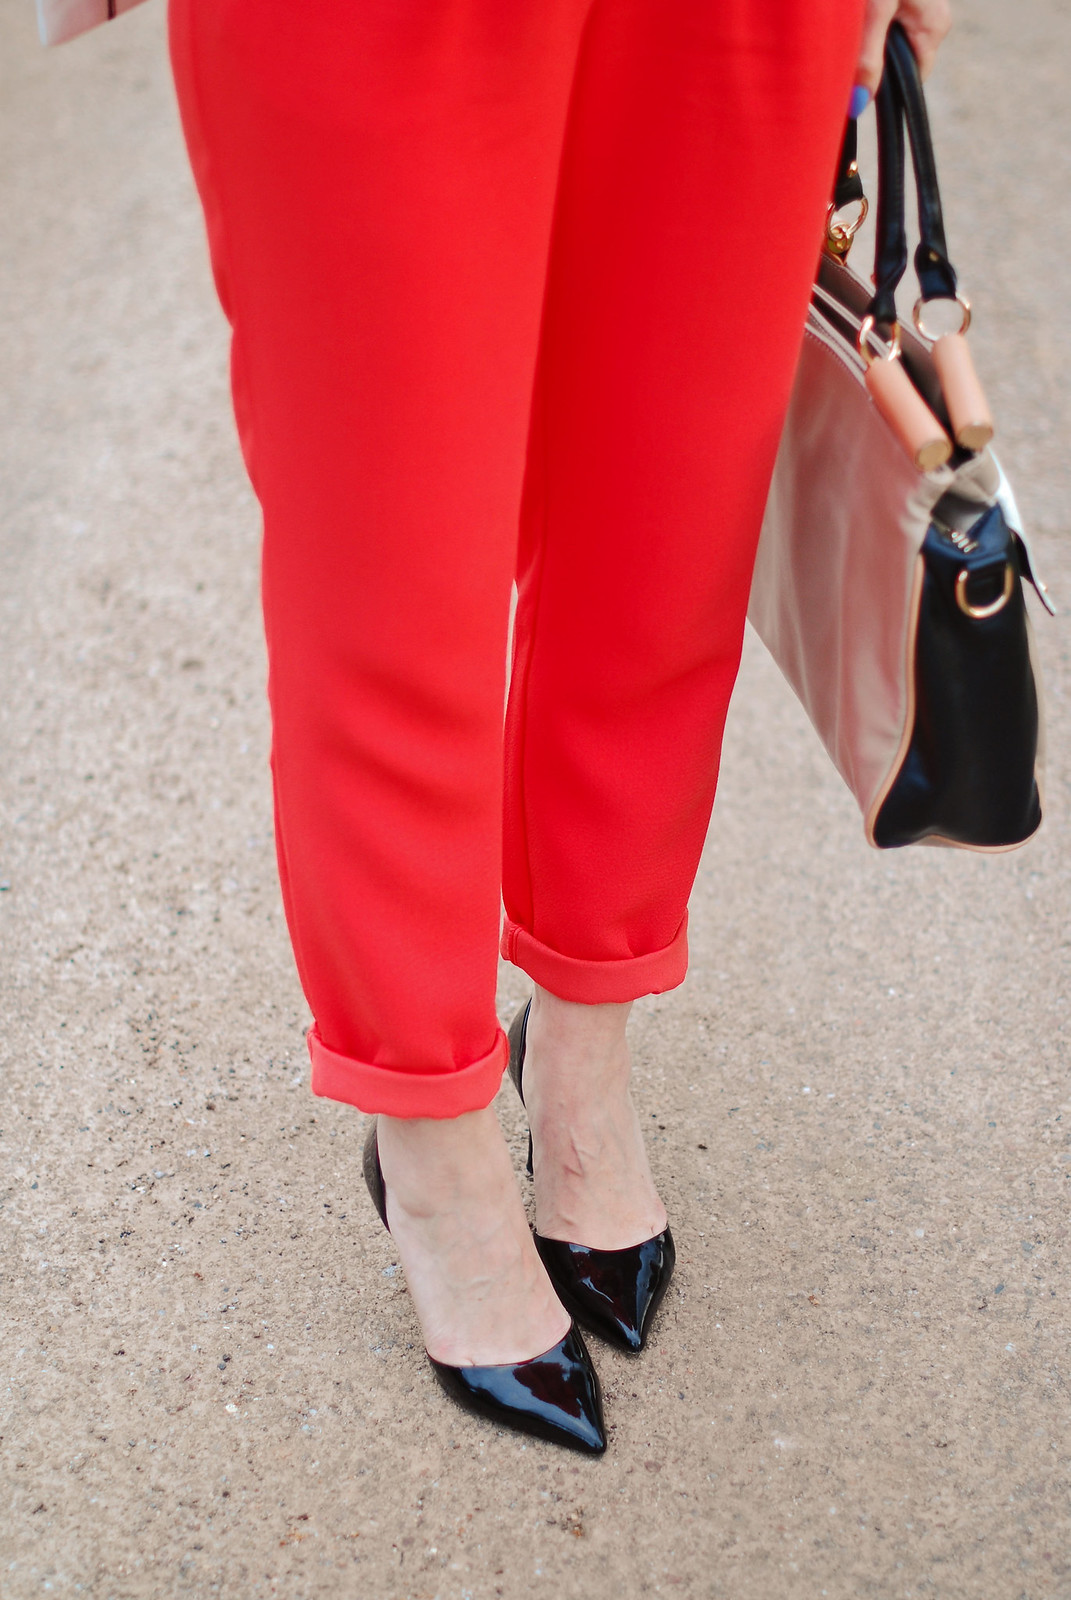 SS16: Orange short sleeved jumpsuit, black pointed toe heels, colour block bag | Not Dressed As Lamb